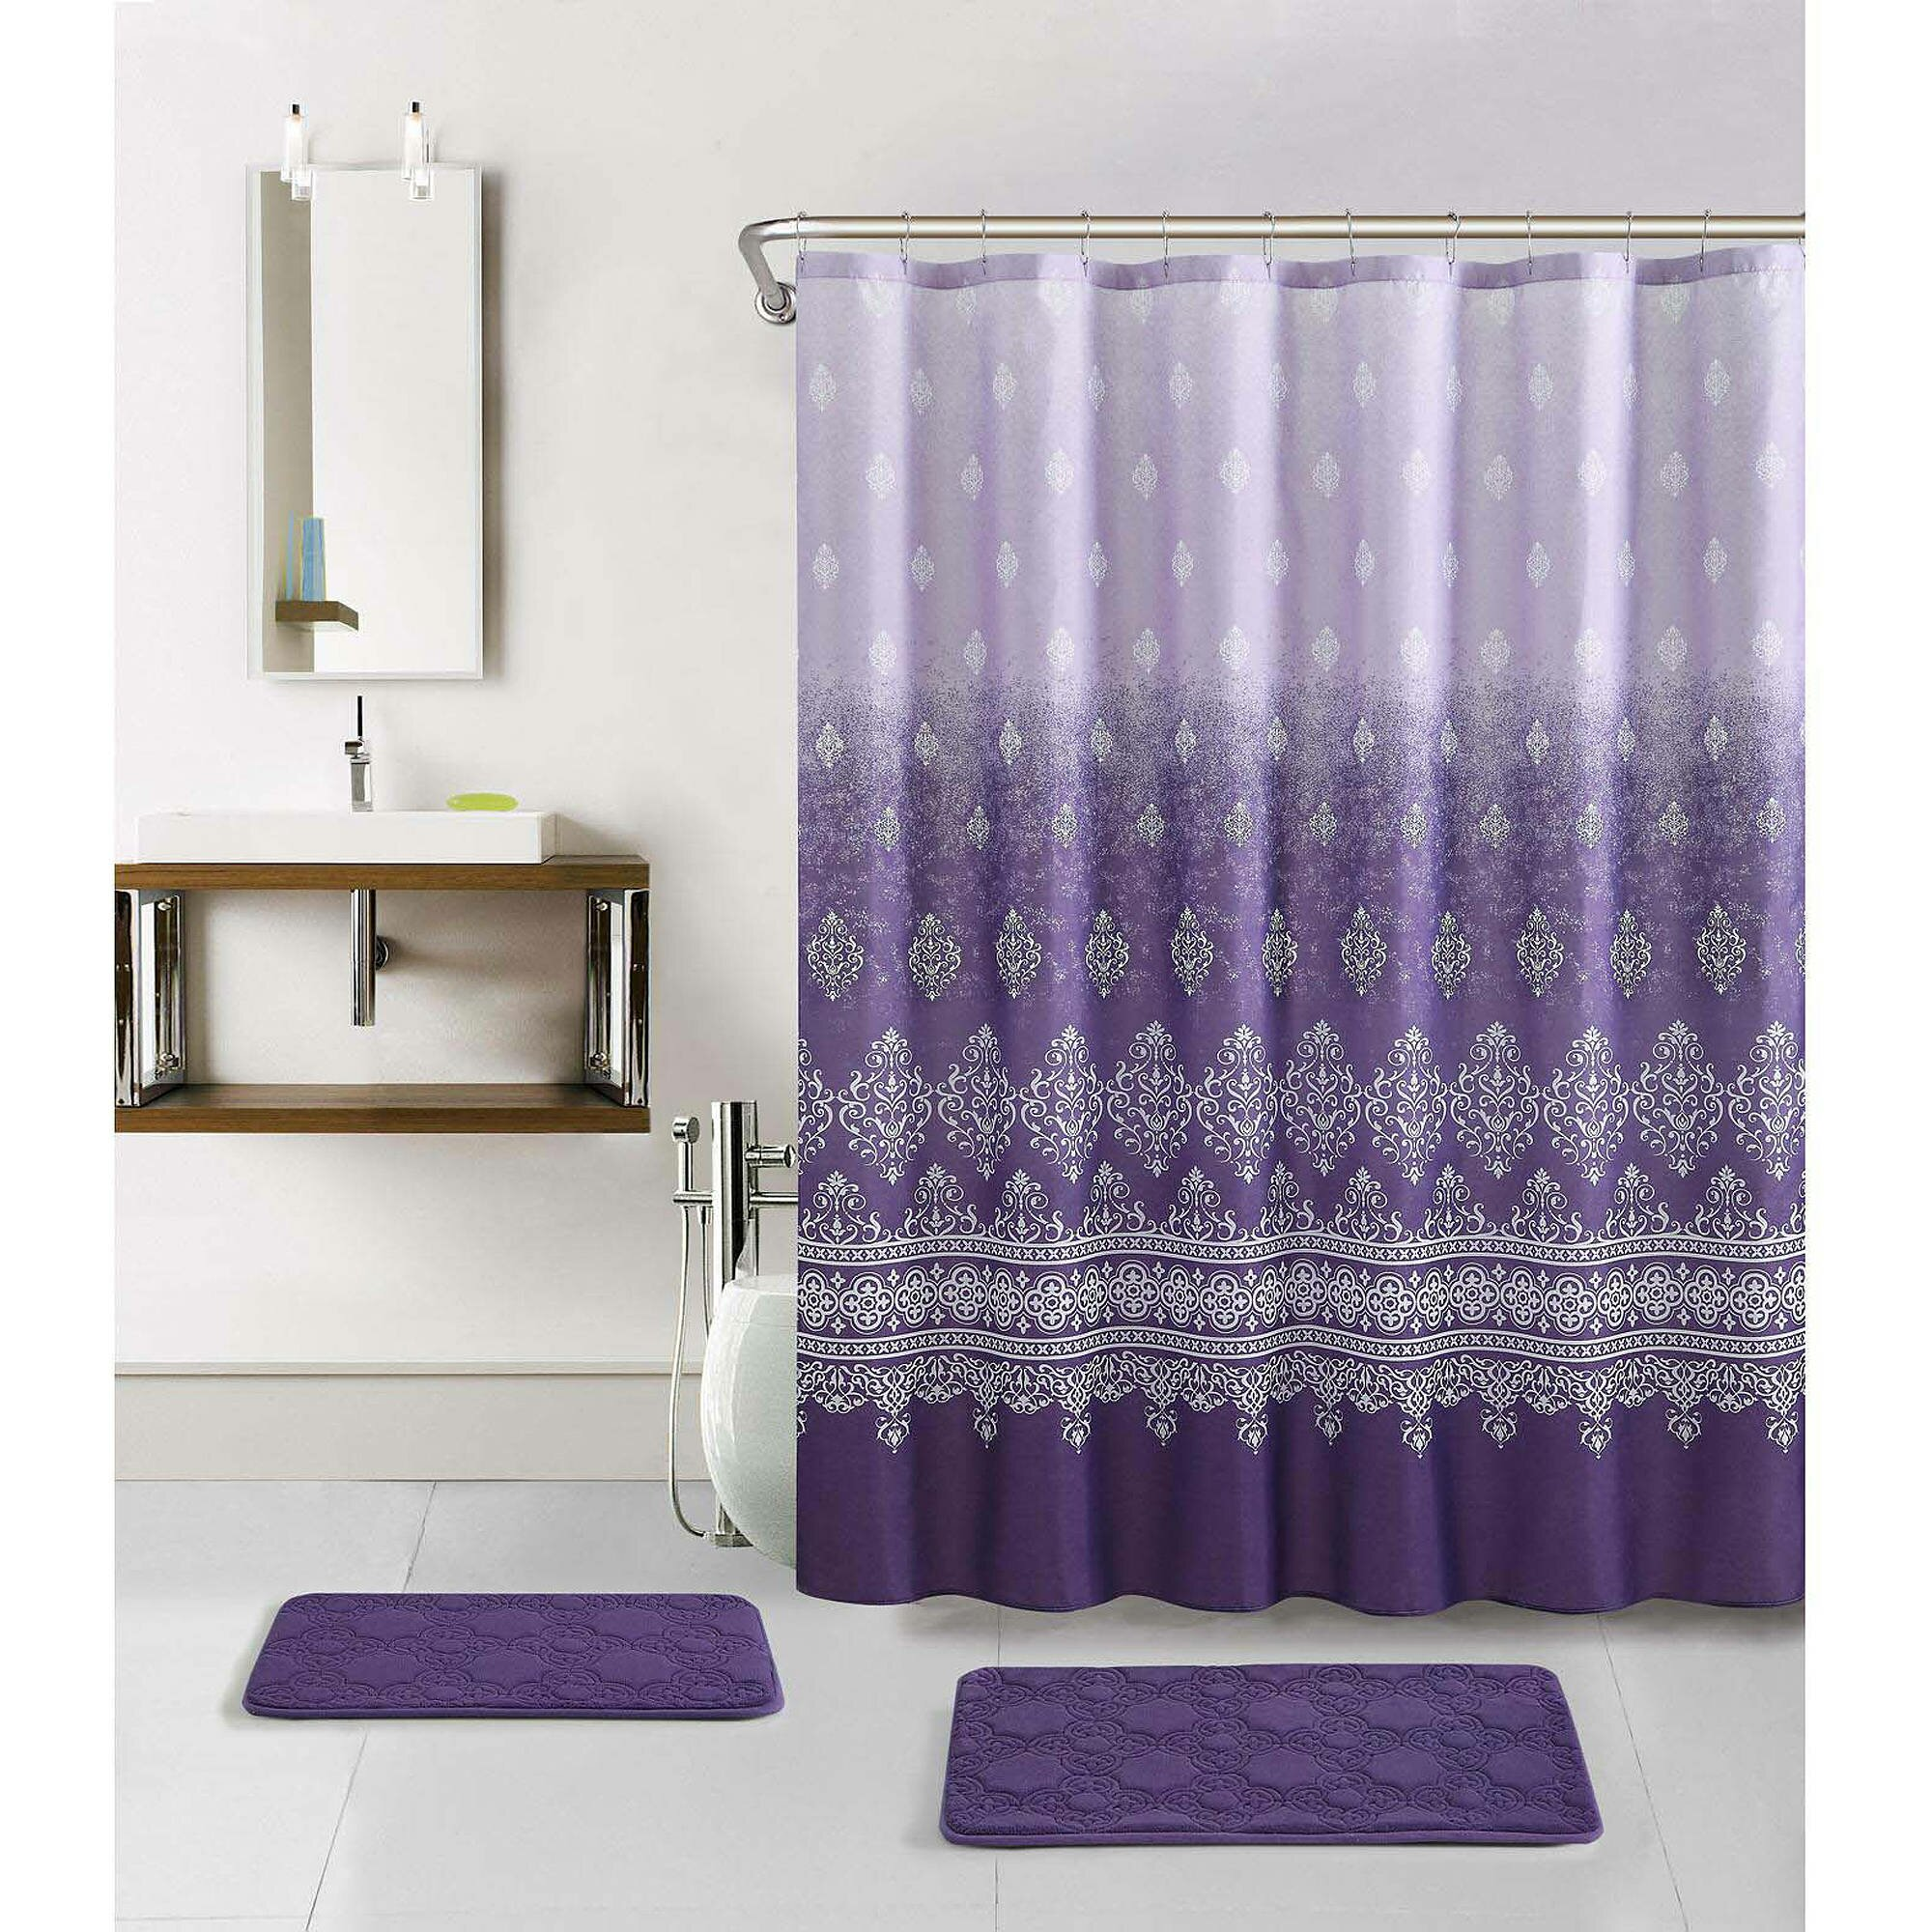 shower curtain walmart walmart shower curtain bathroom curtains walmart